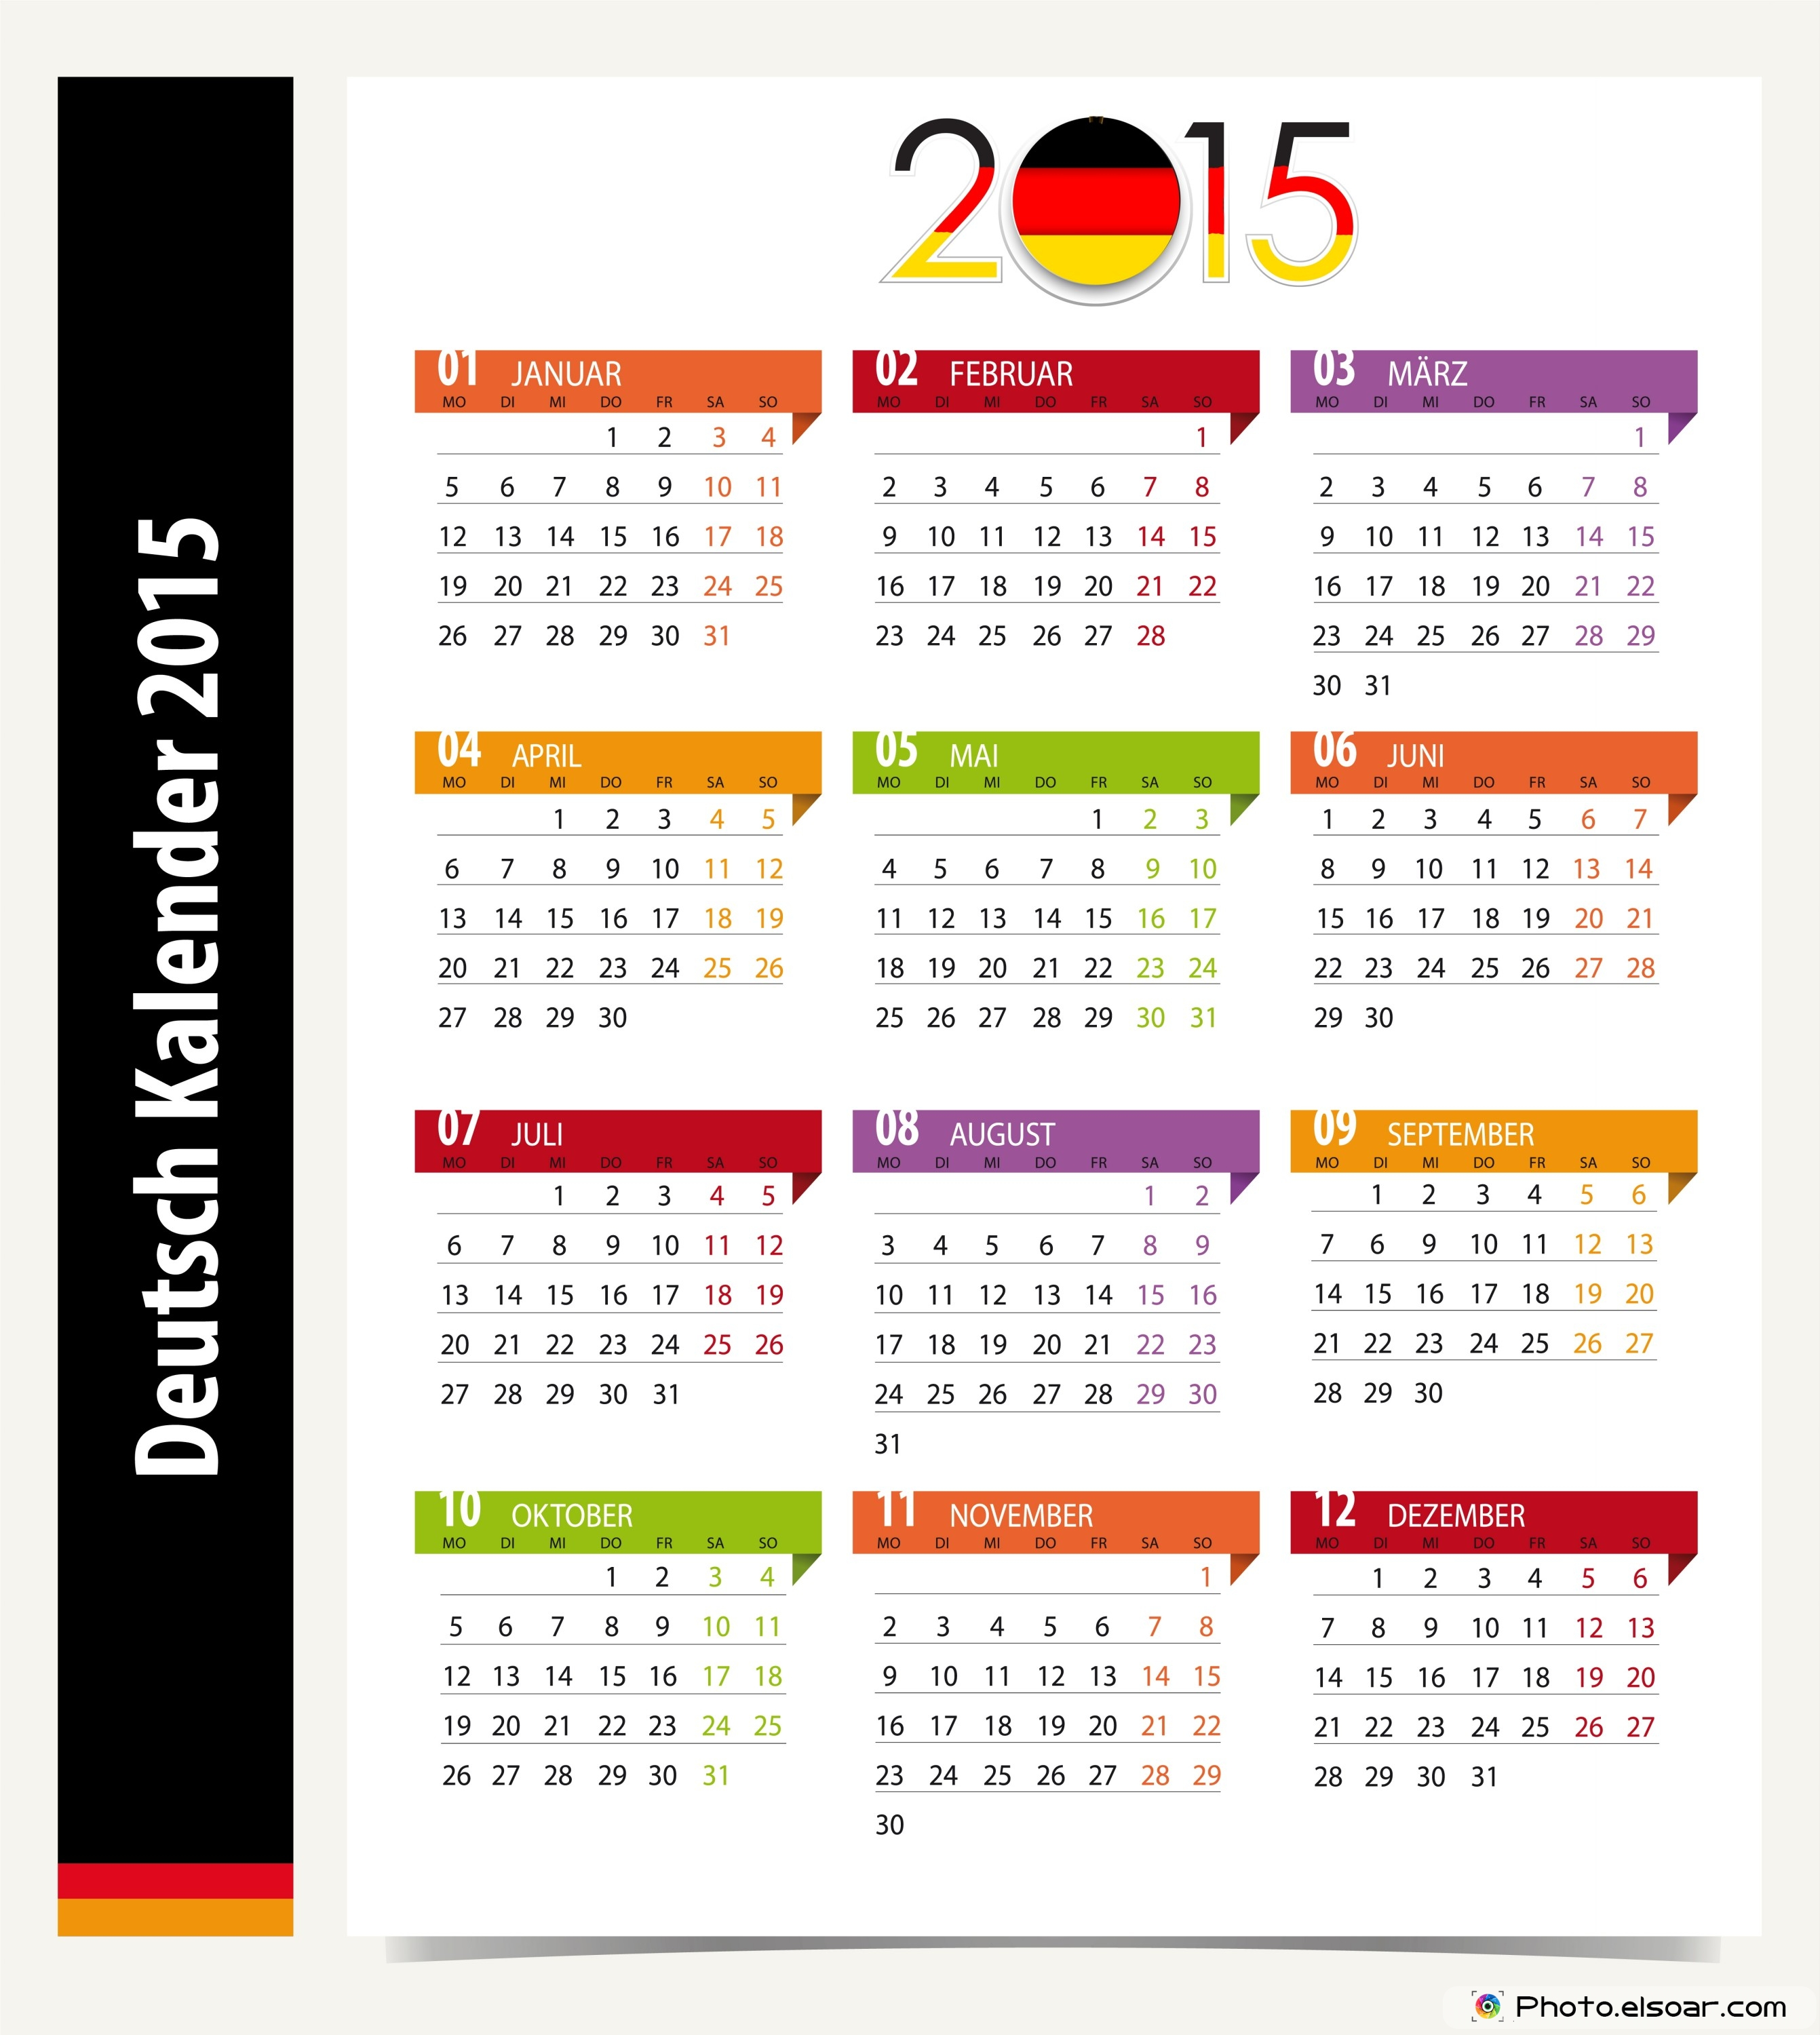 Search Results For Kalender Deutschland Monate